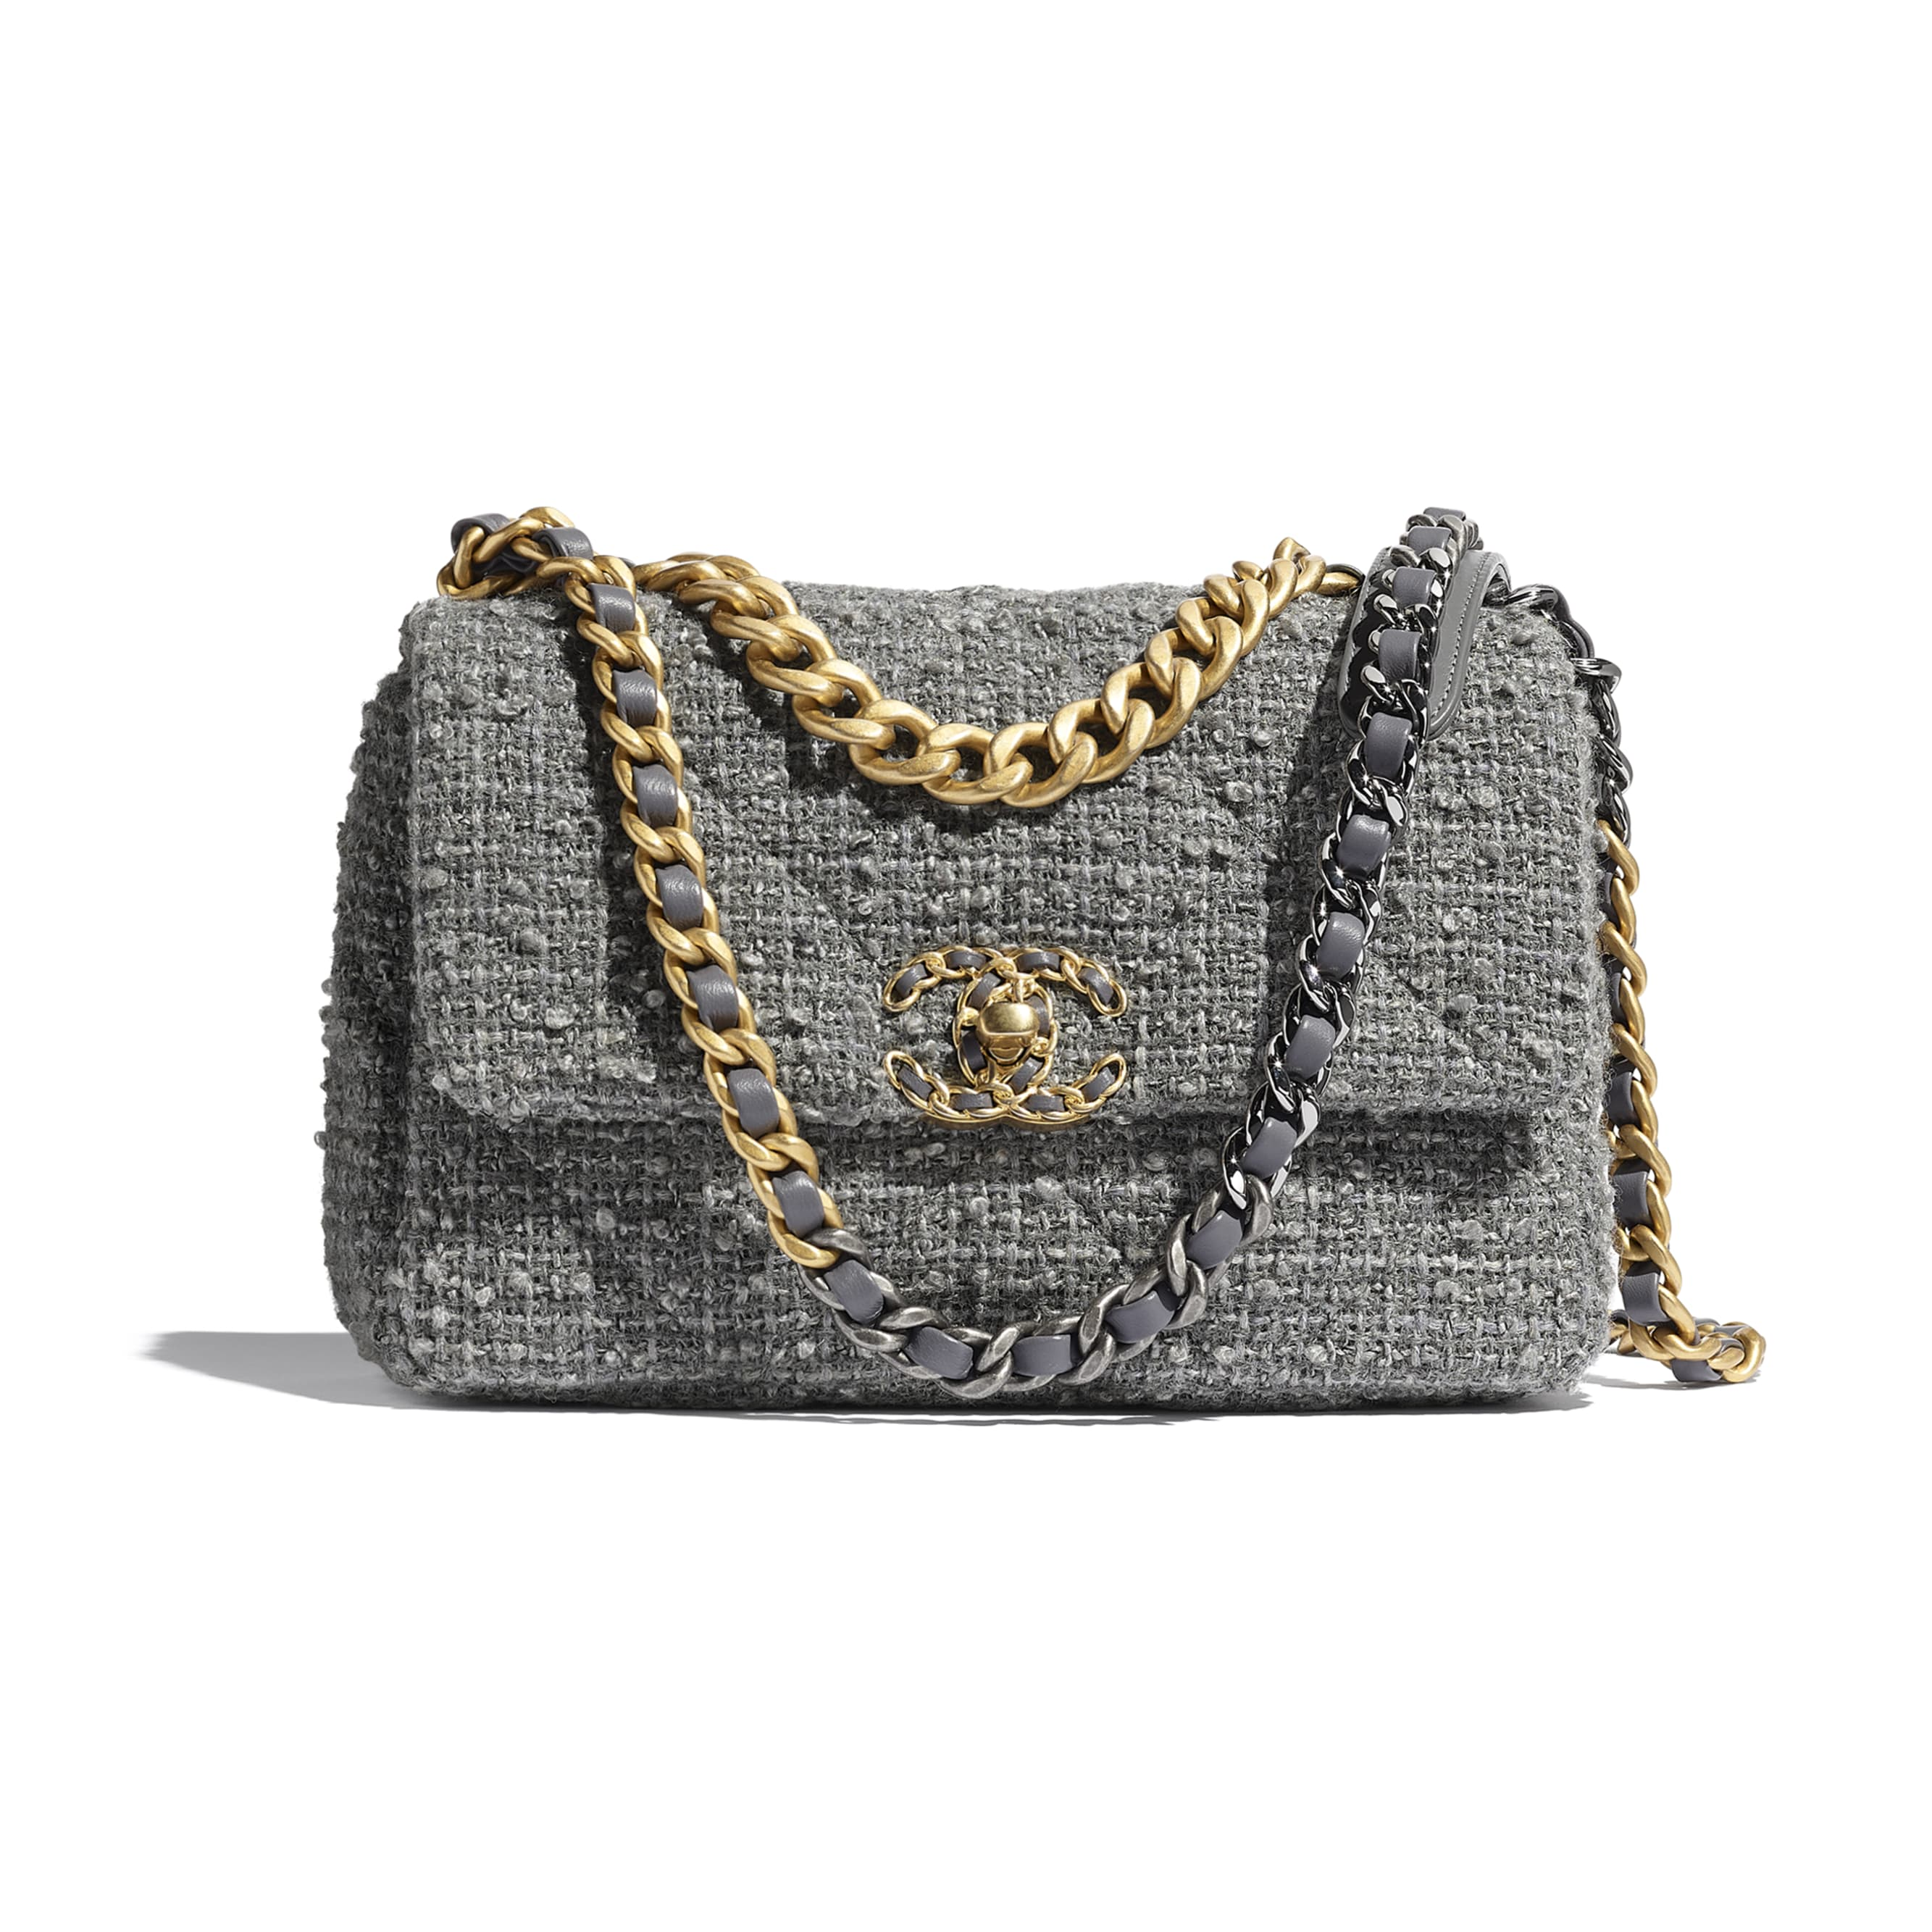 CHANEL 19 Flap Bag - Grey - Wool Tweed, Gold-Tone, Silver-Tone & Ruthenium-Finish Metal - CHANEL - Default view - see standard sized version